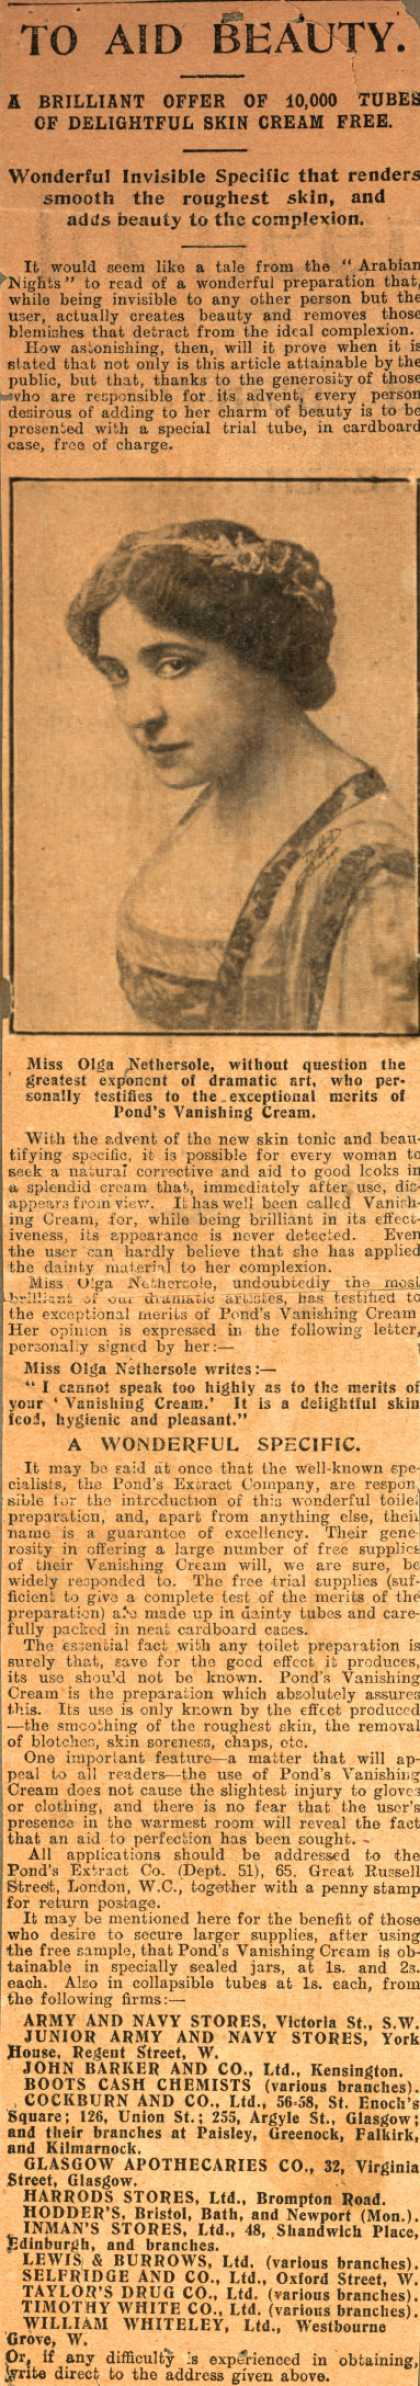 Pond's Extract Co.'s Pond's Vanishing Cream – To Aid Beauty. (1910)